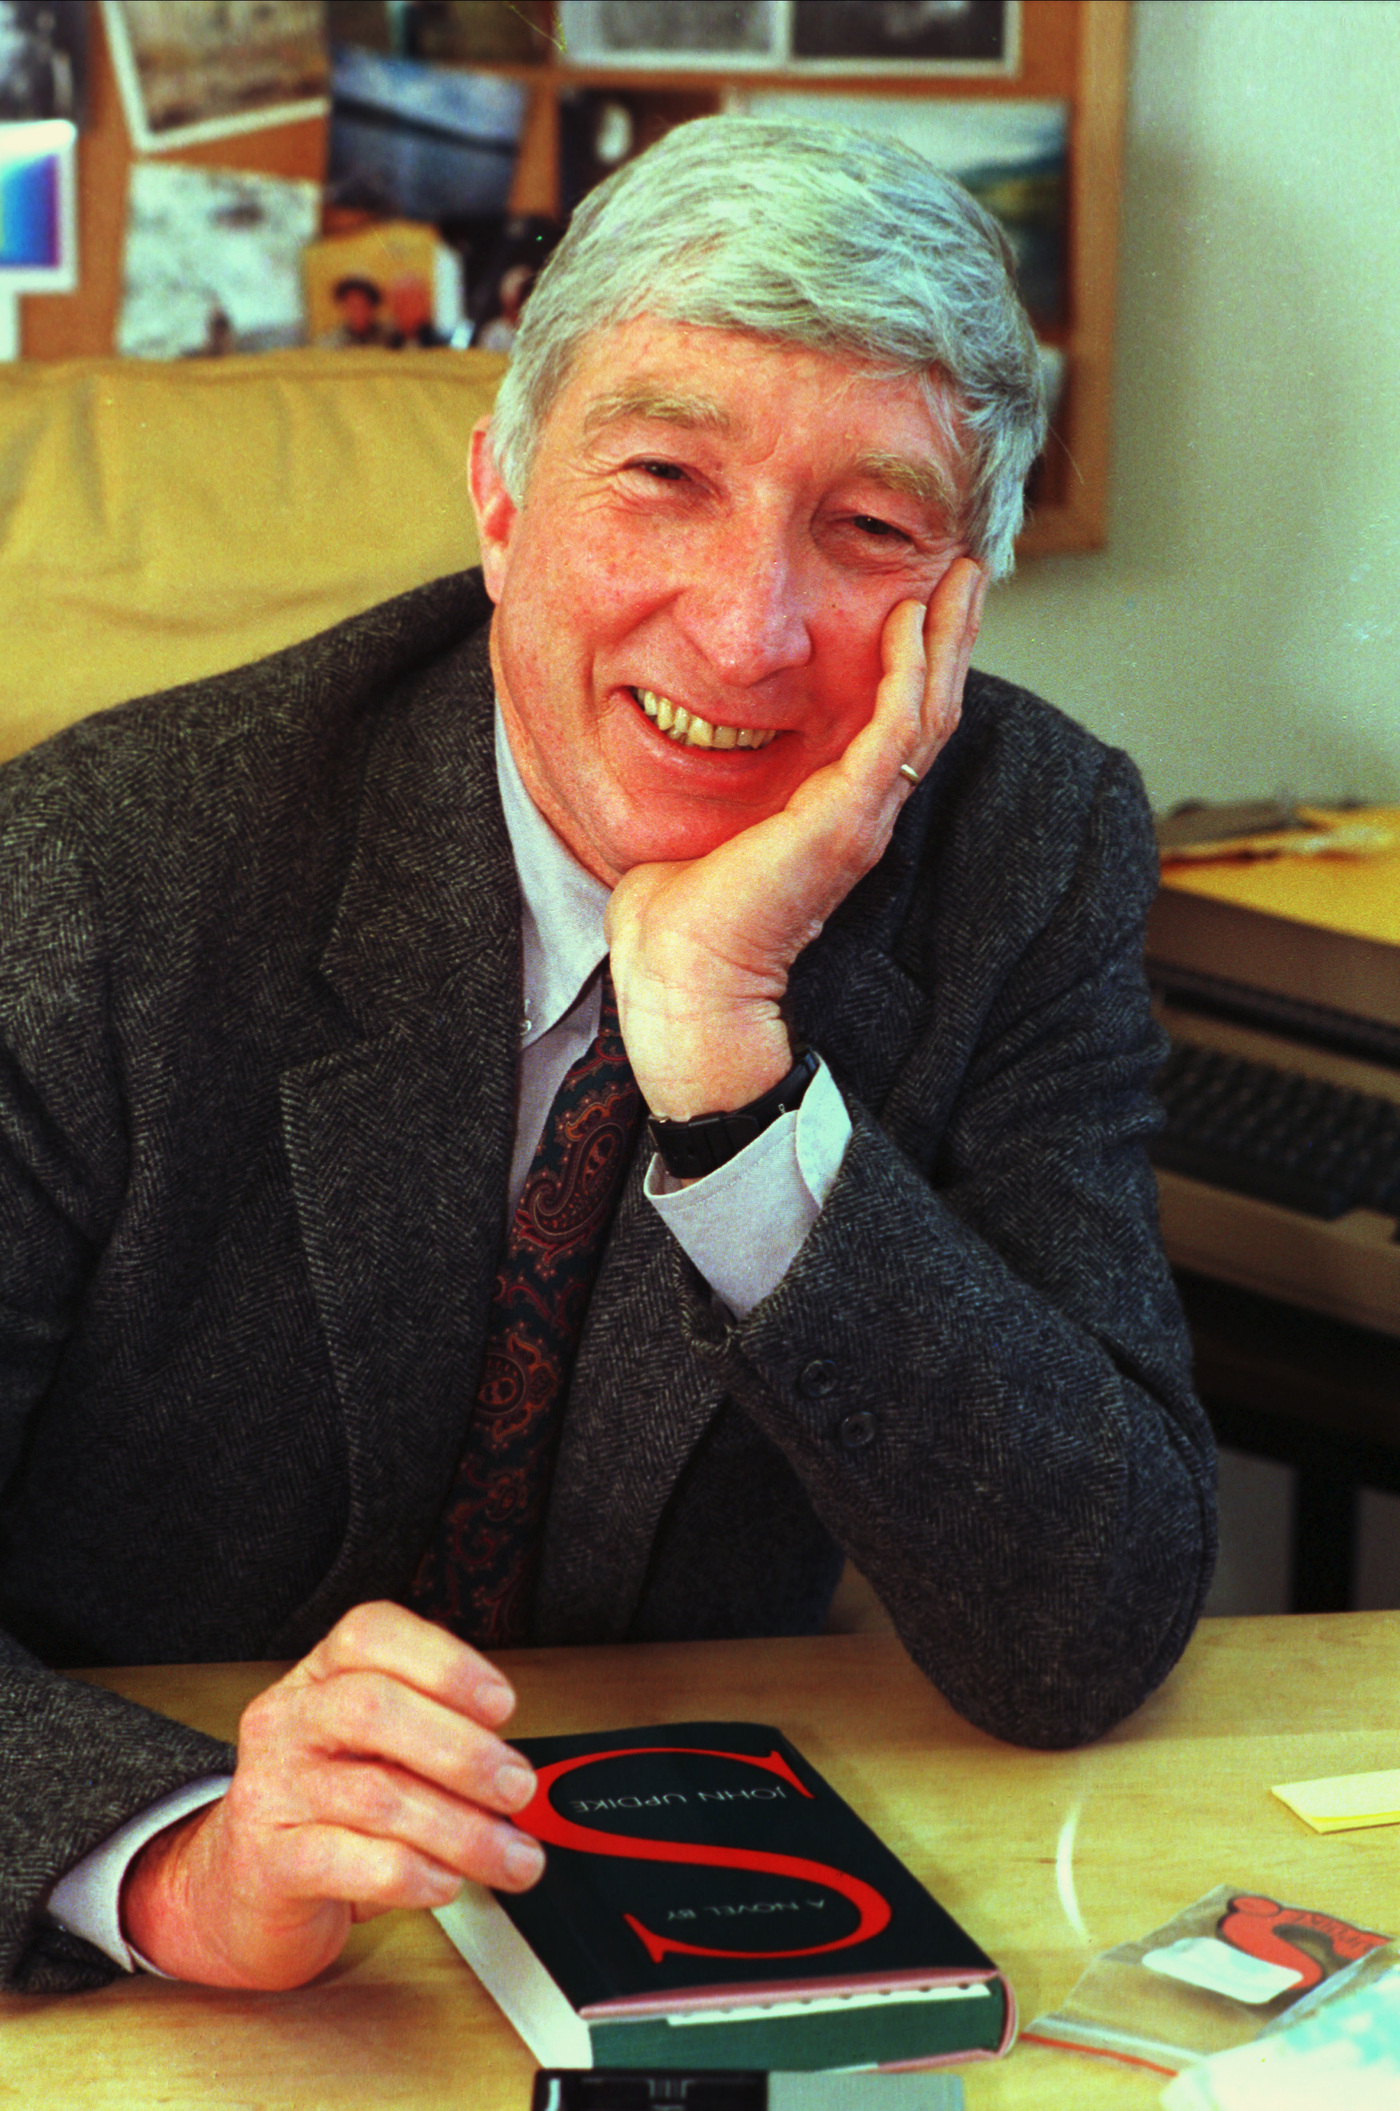 Upon learning of his cancer diagnosis author john updike wrote a poem